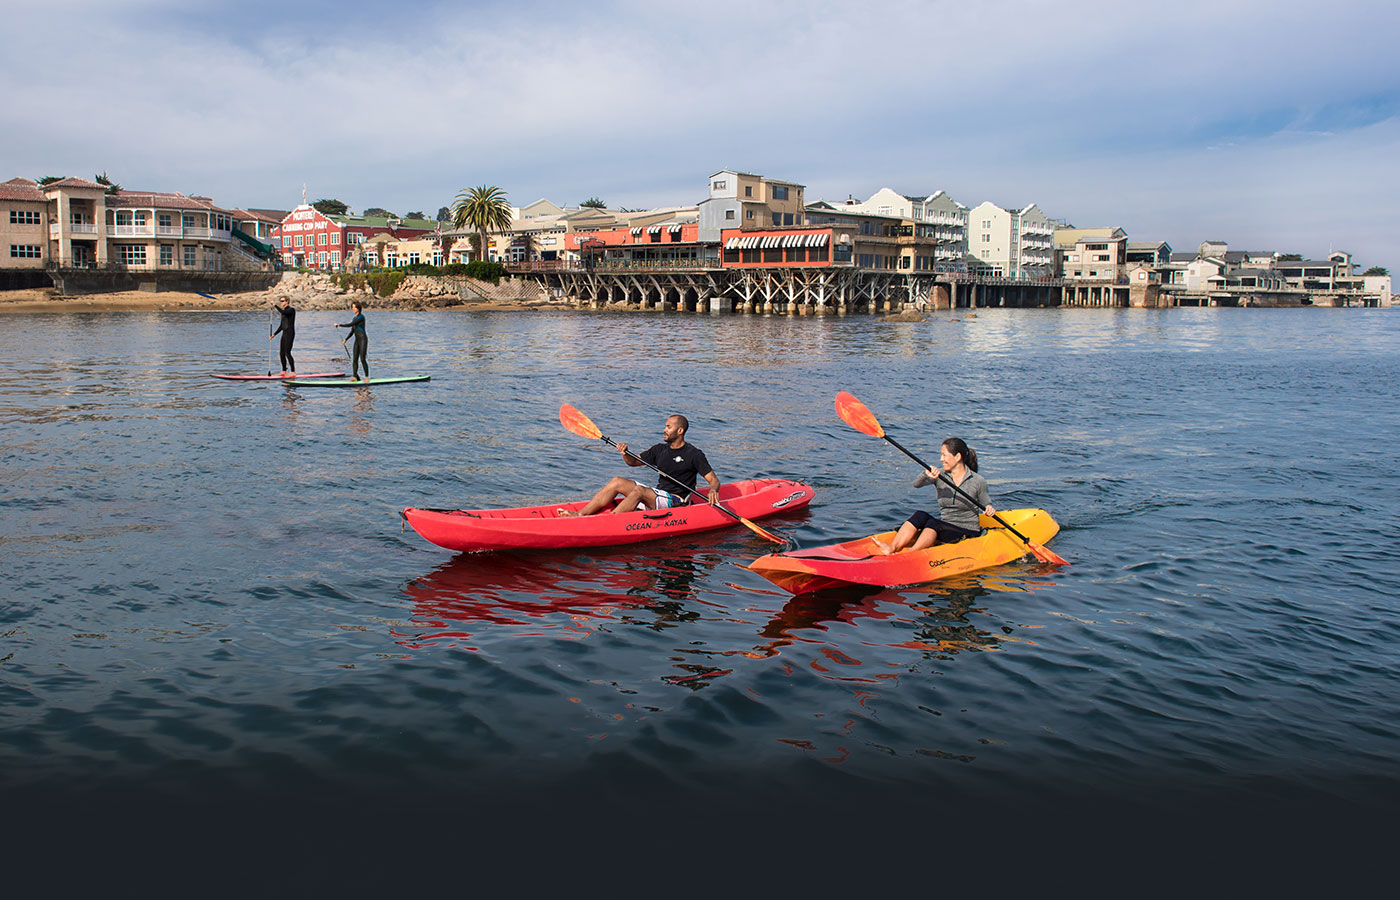 Cannery Row from the Water